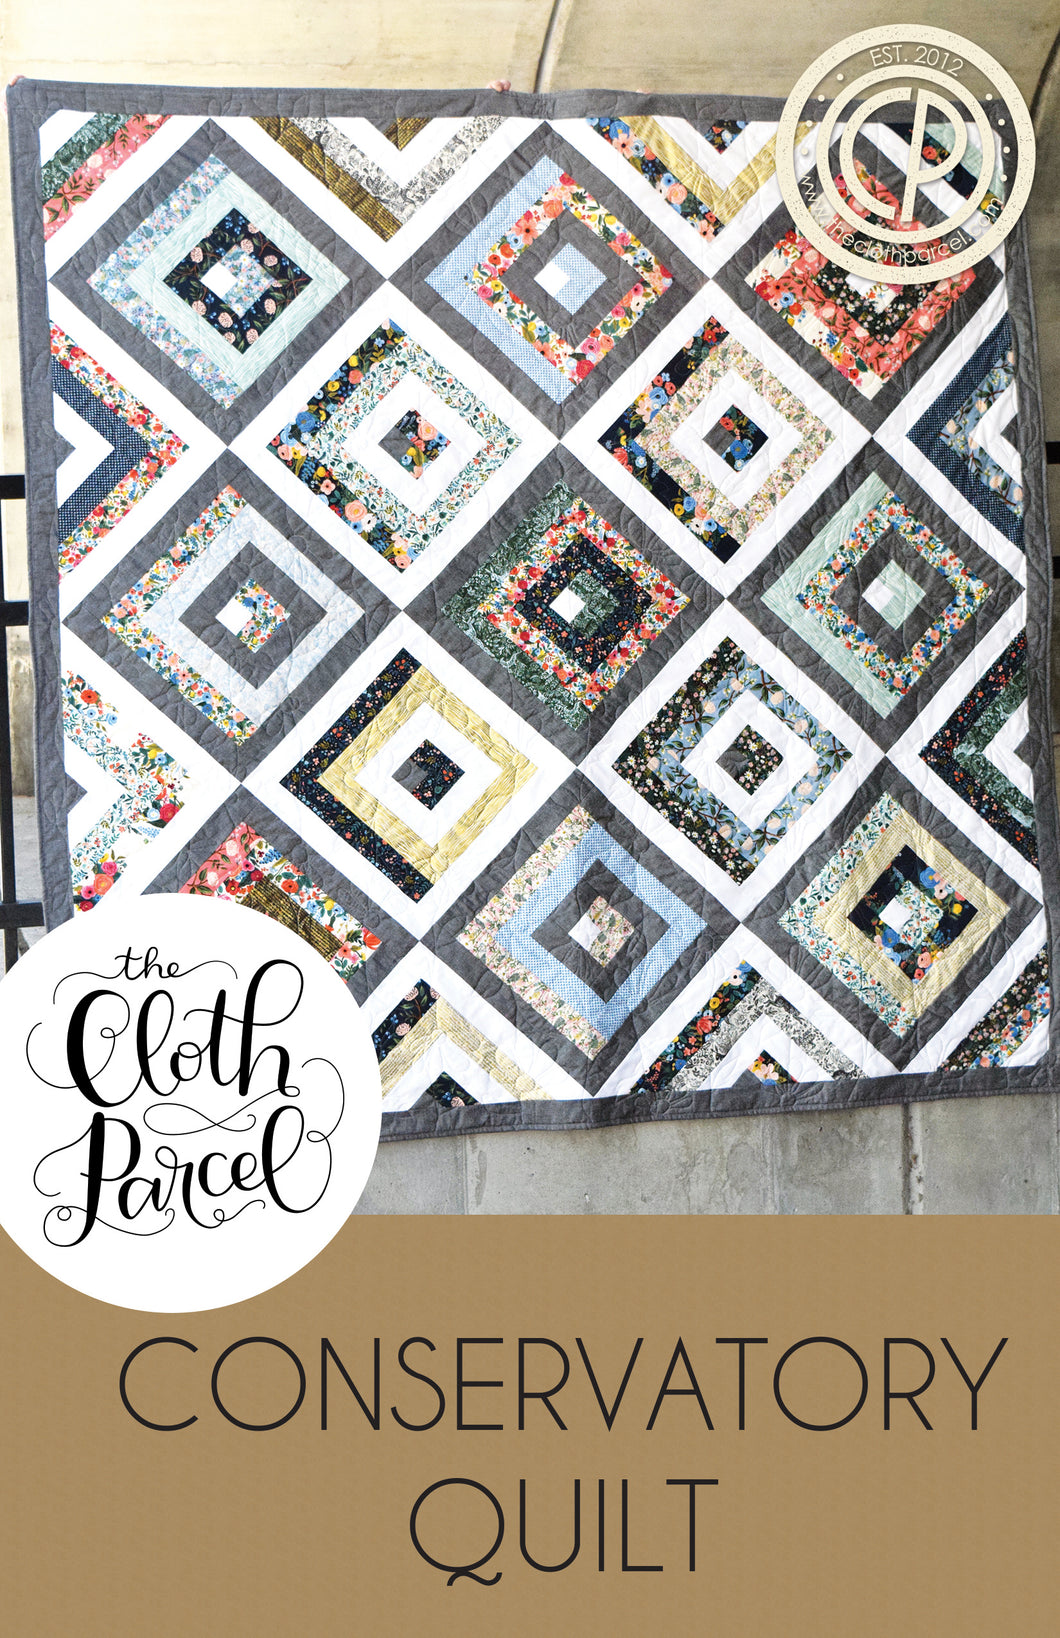 Conservatory Quilt